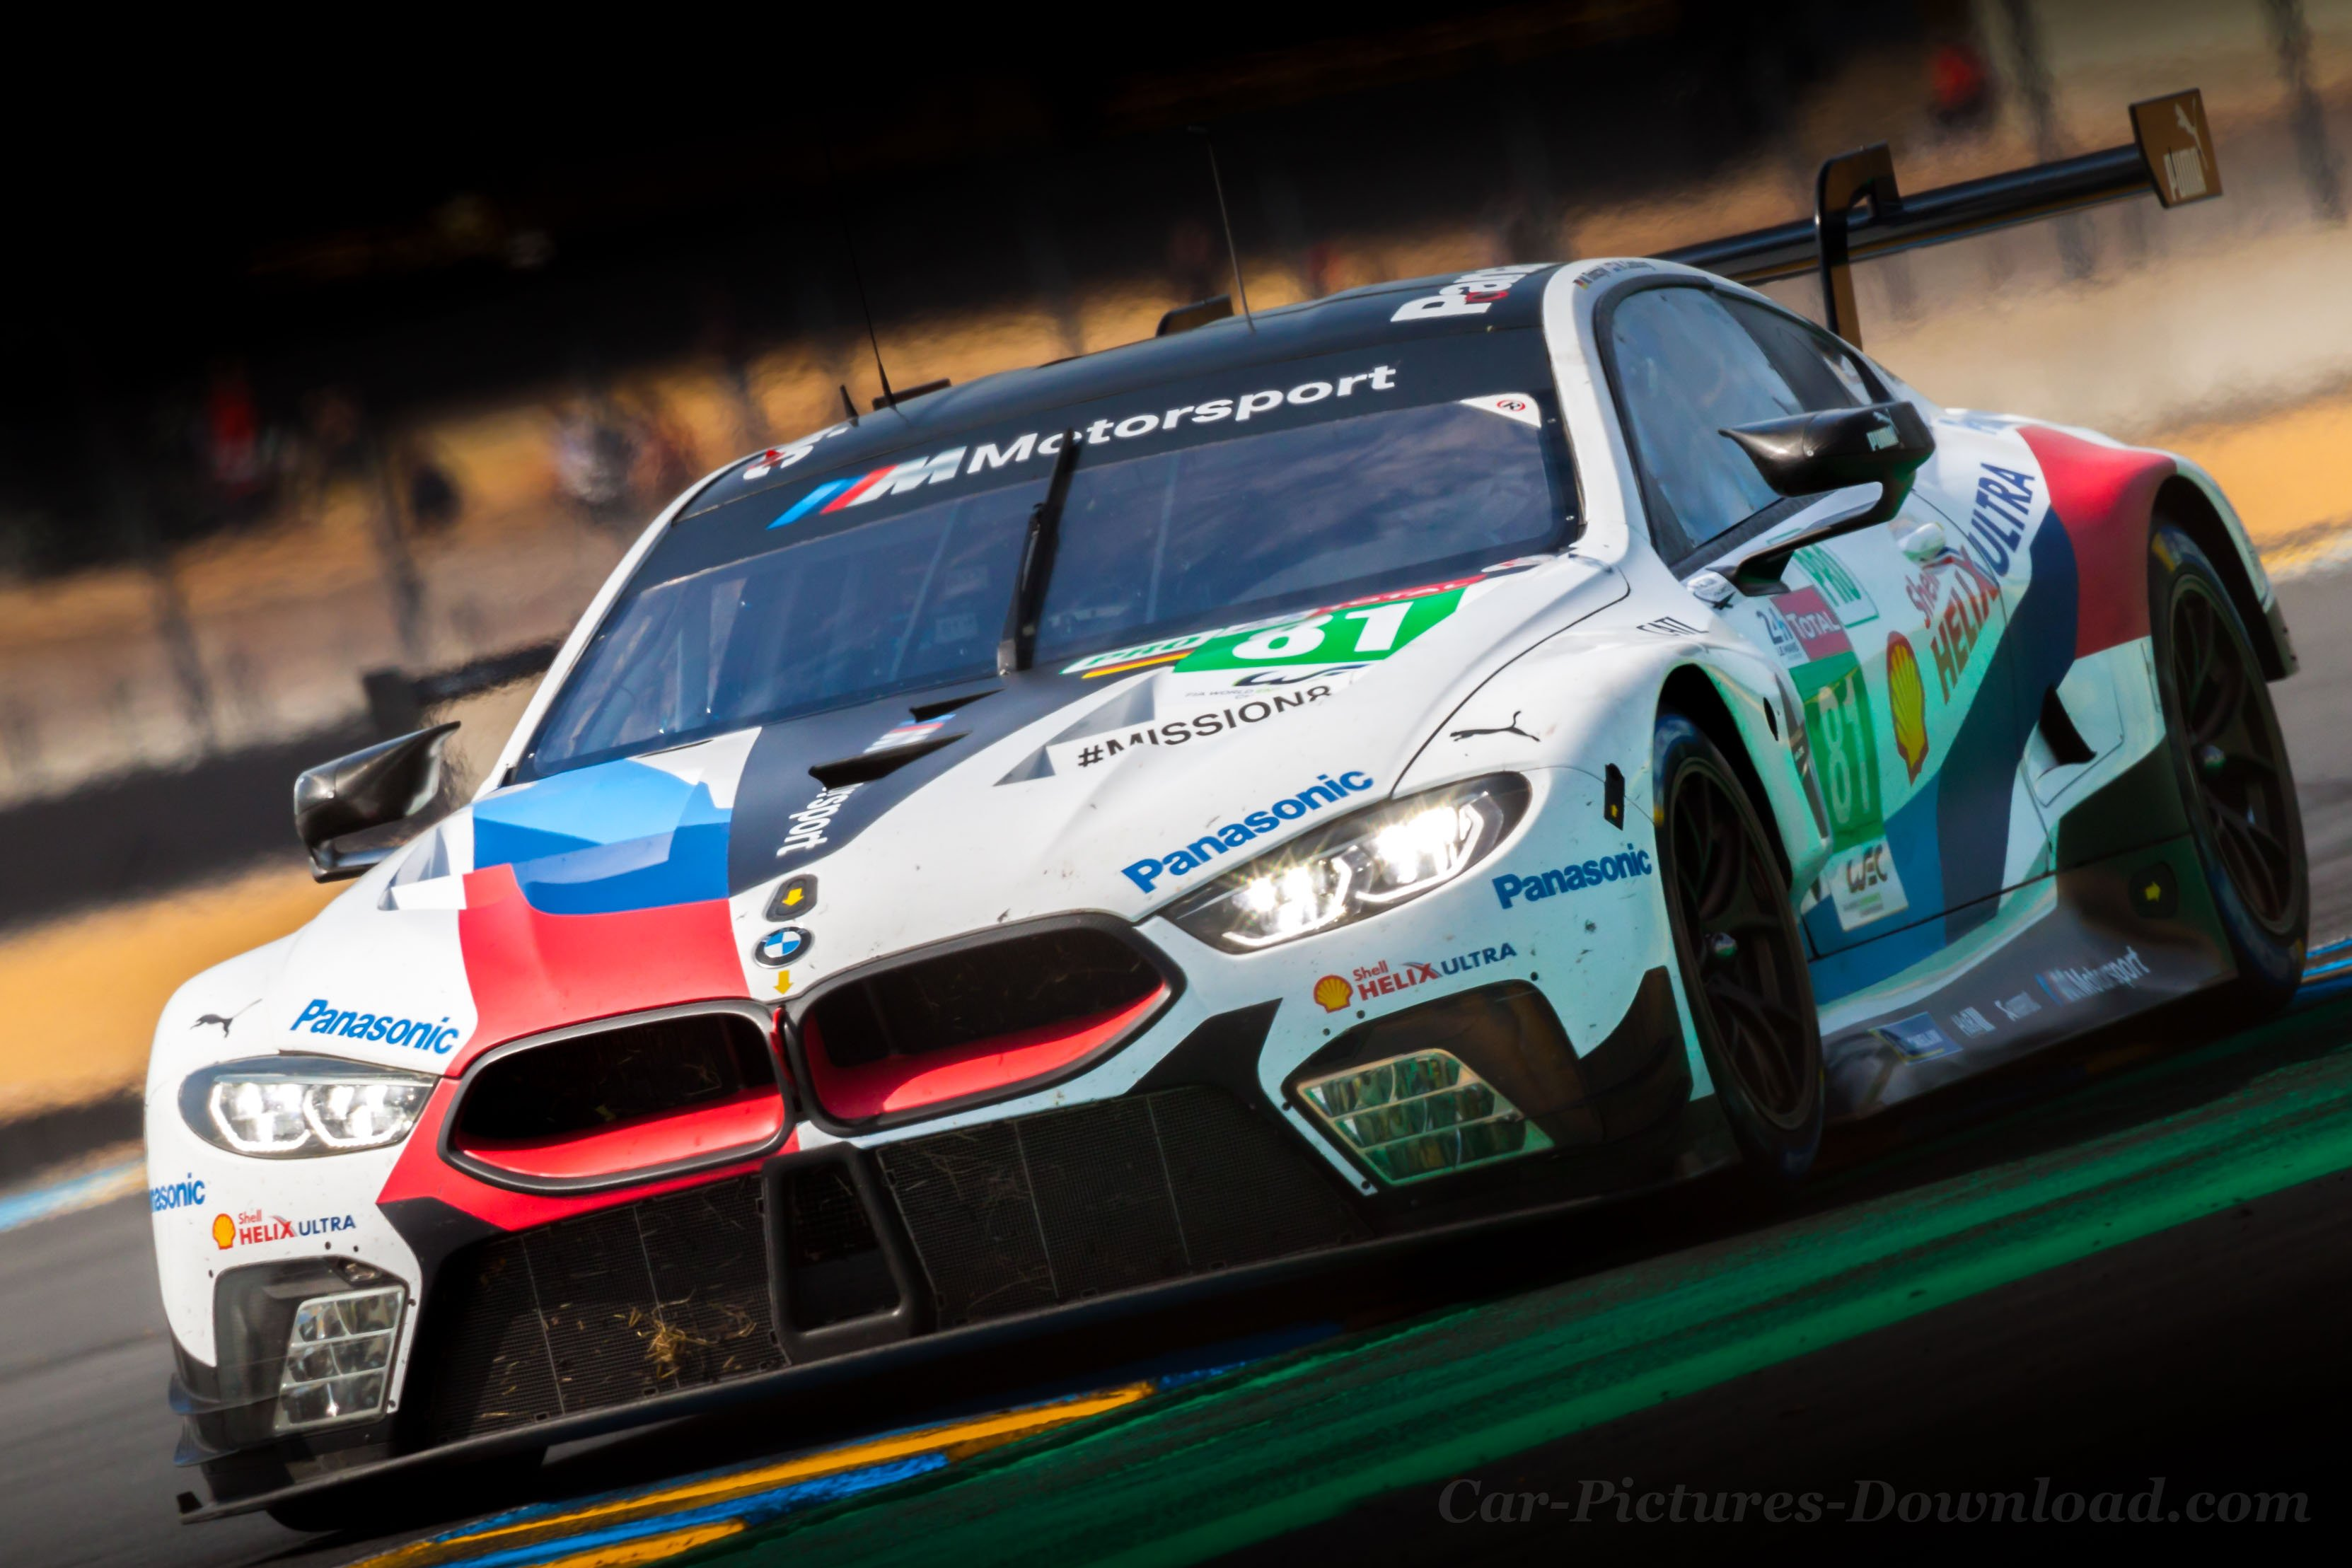 Free Download 60 Full HD Cars Racing Wallpapers To